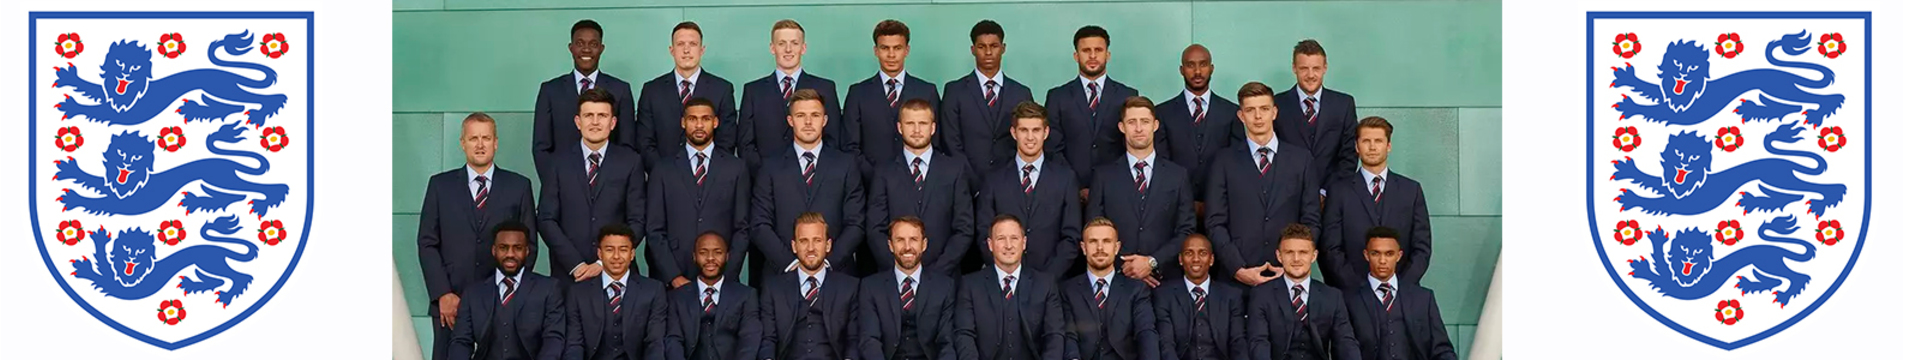 englands-route-to-world-cup-victory-thumb.jpg